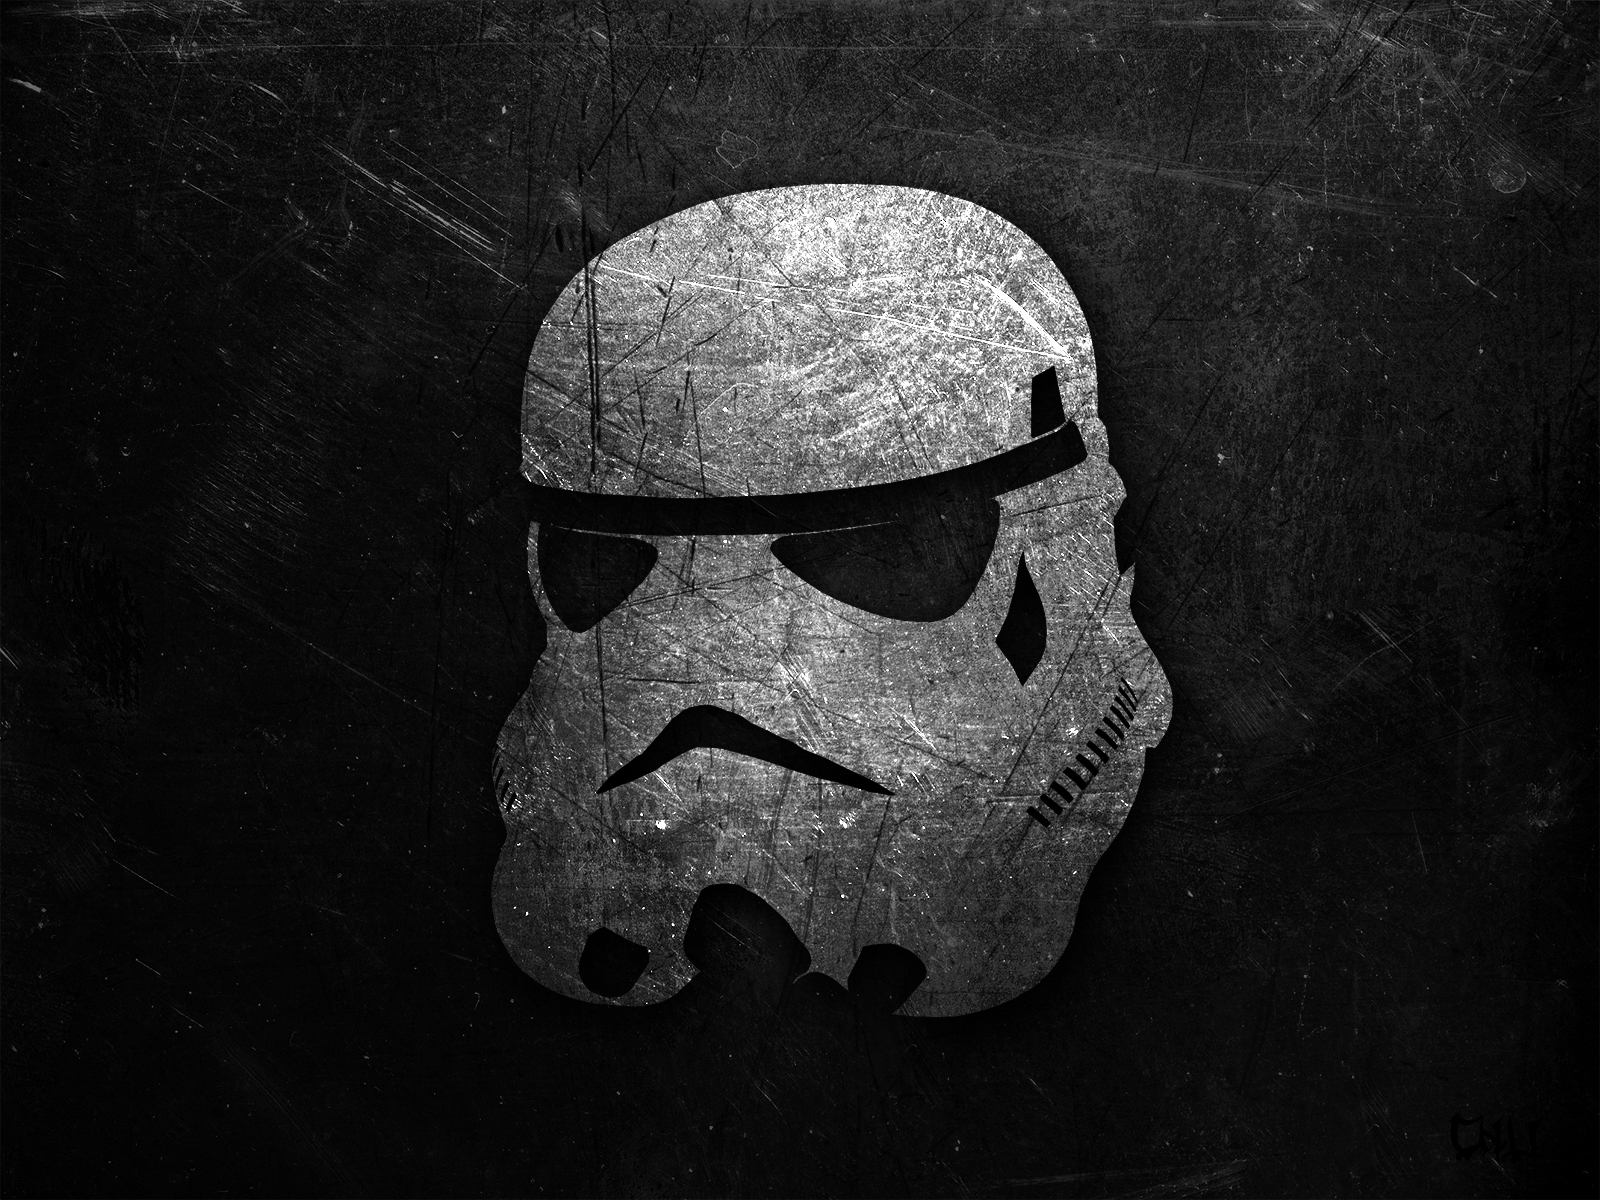 star wars images stormtrooper wallpaper hd wallpaper and